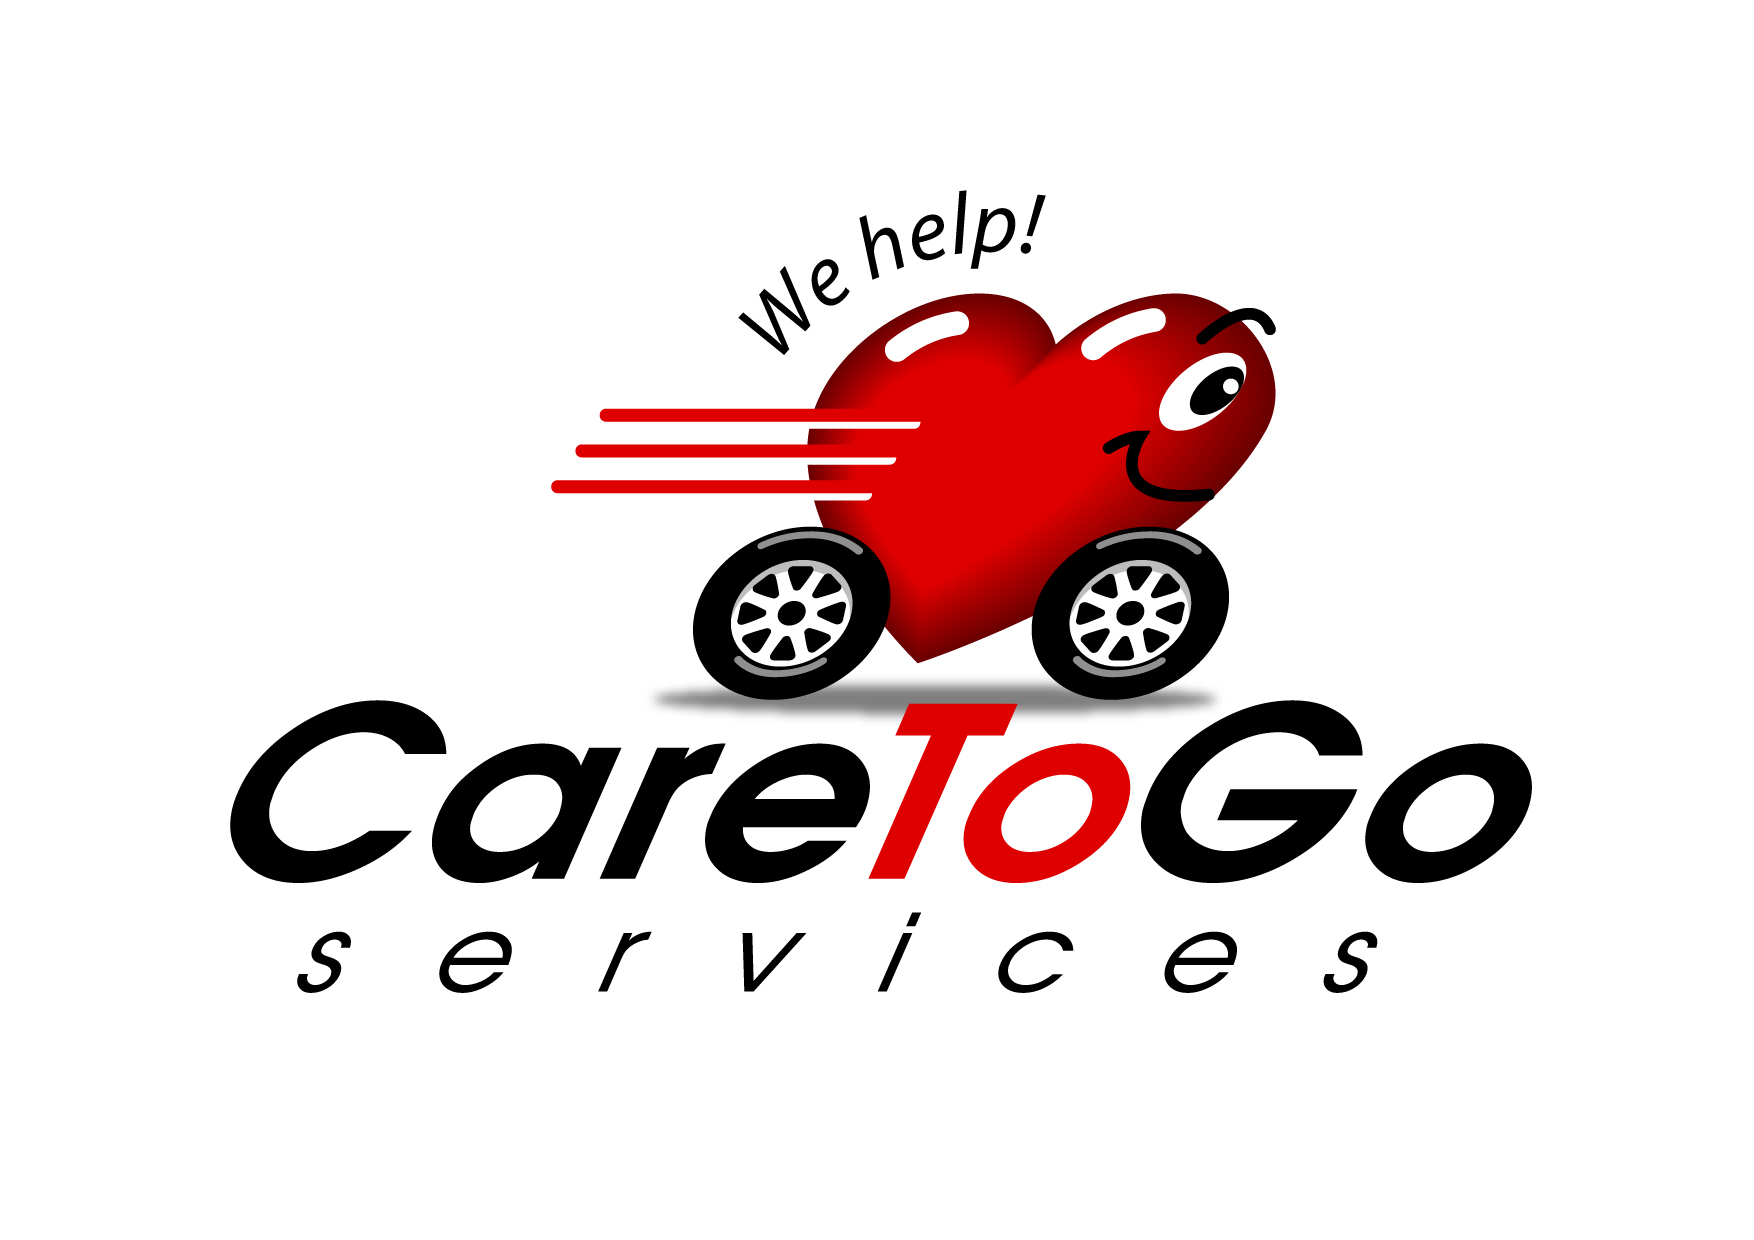 Logo Design by Wilfredo Mendoza - Entry No. 237 in the Logo Design Contest Care To Go Services.